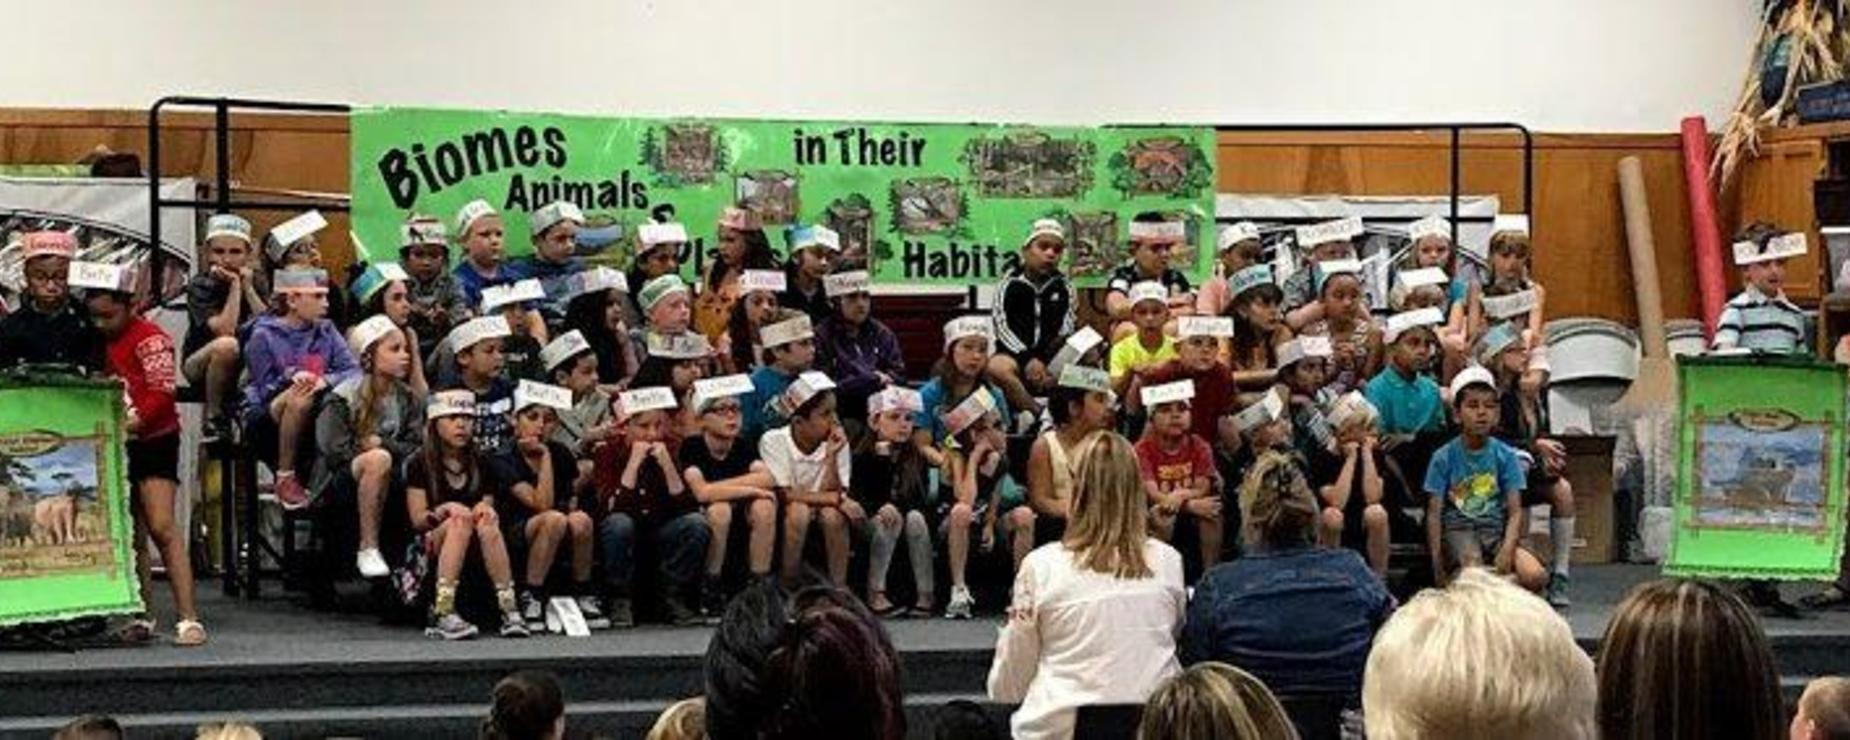 students performing an animal-related presentation